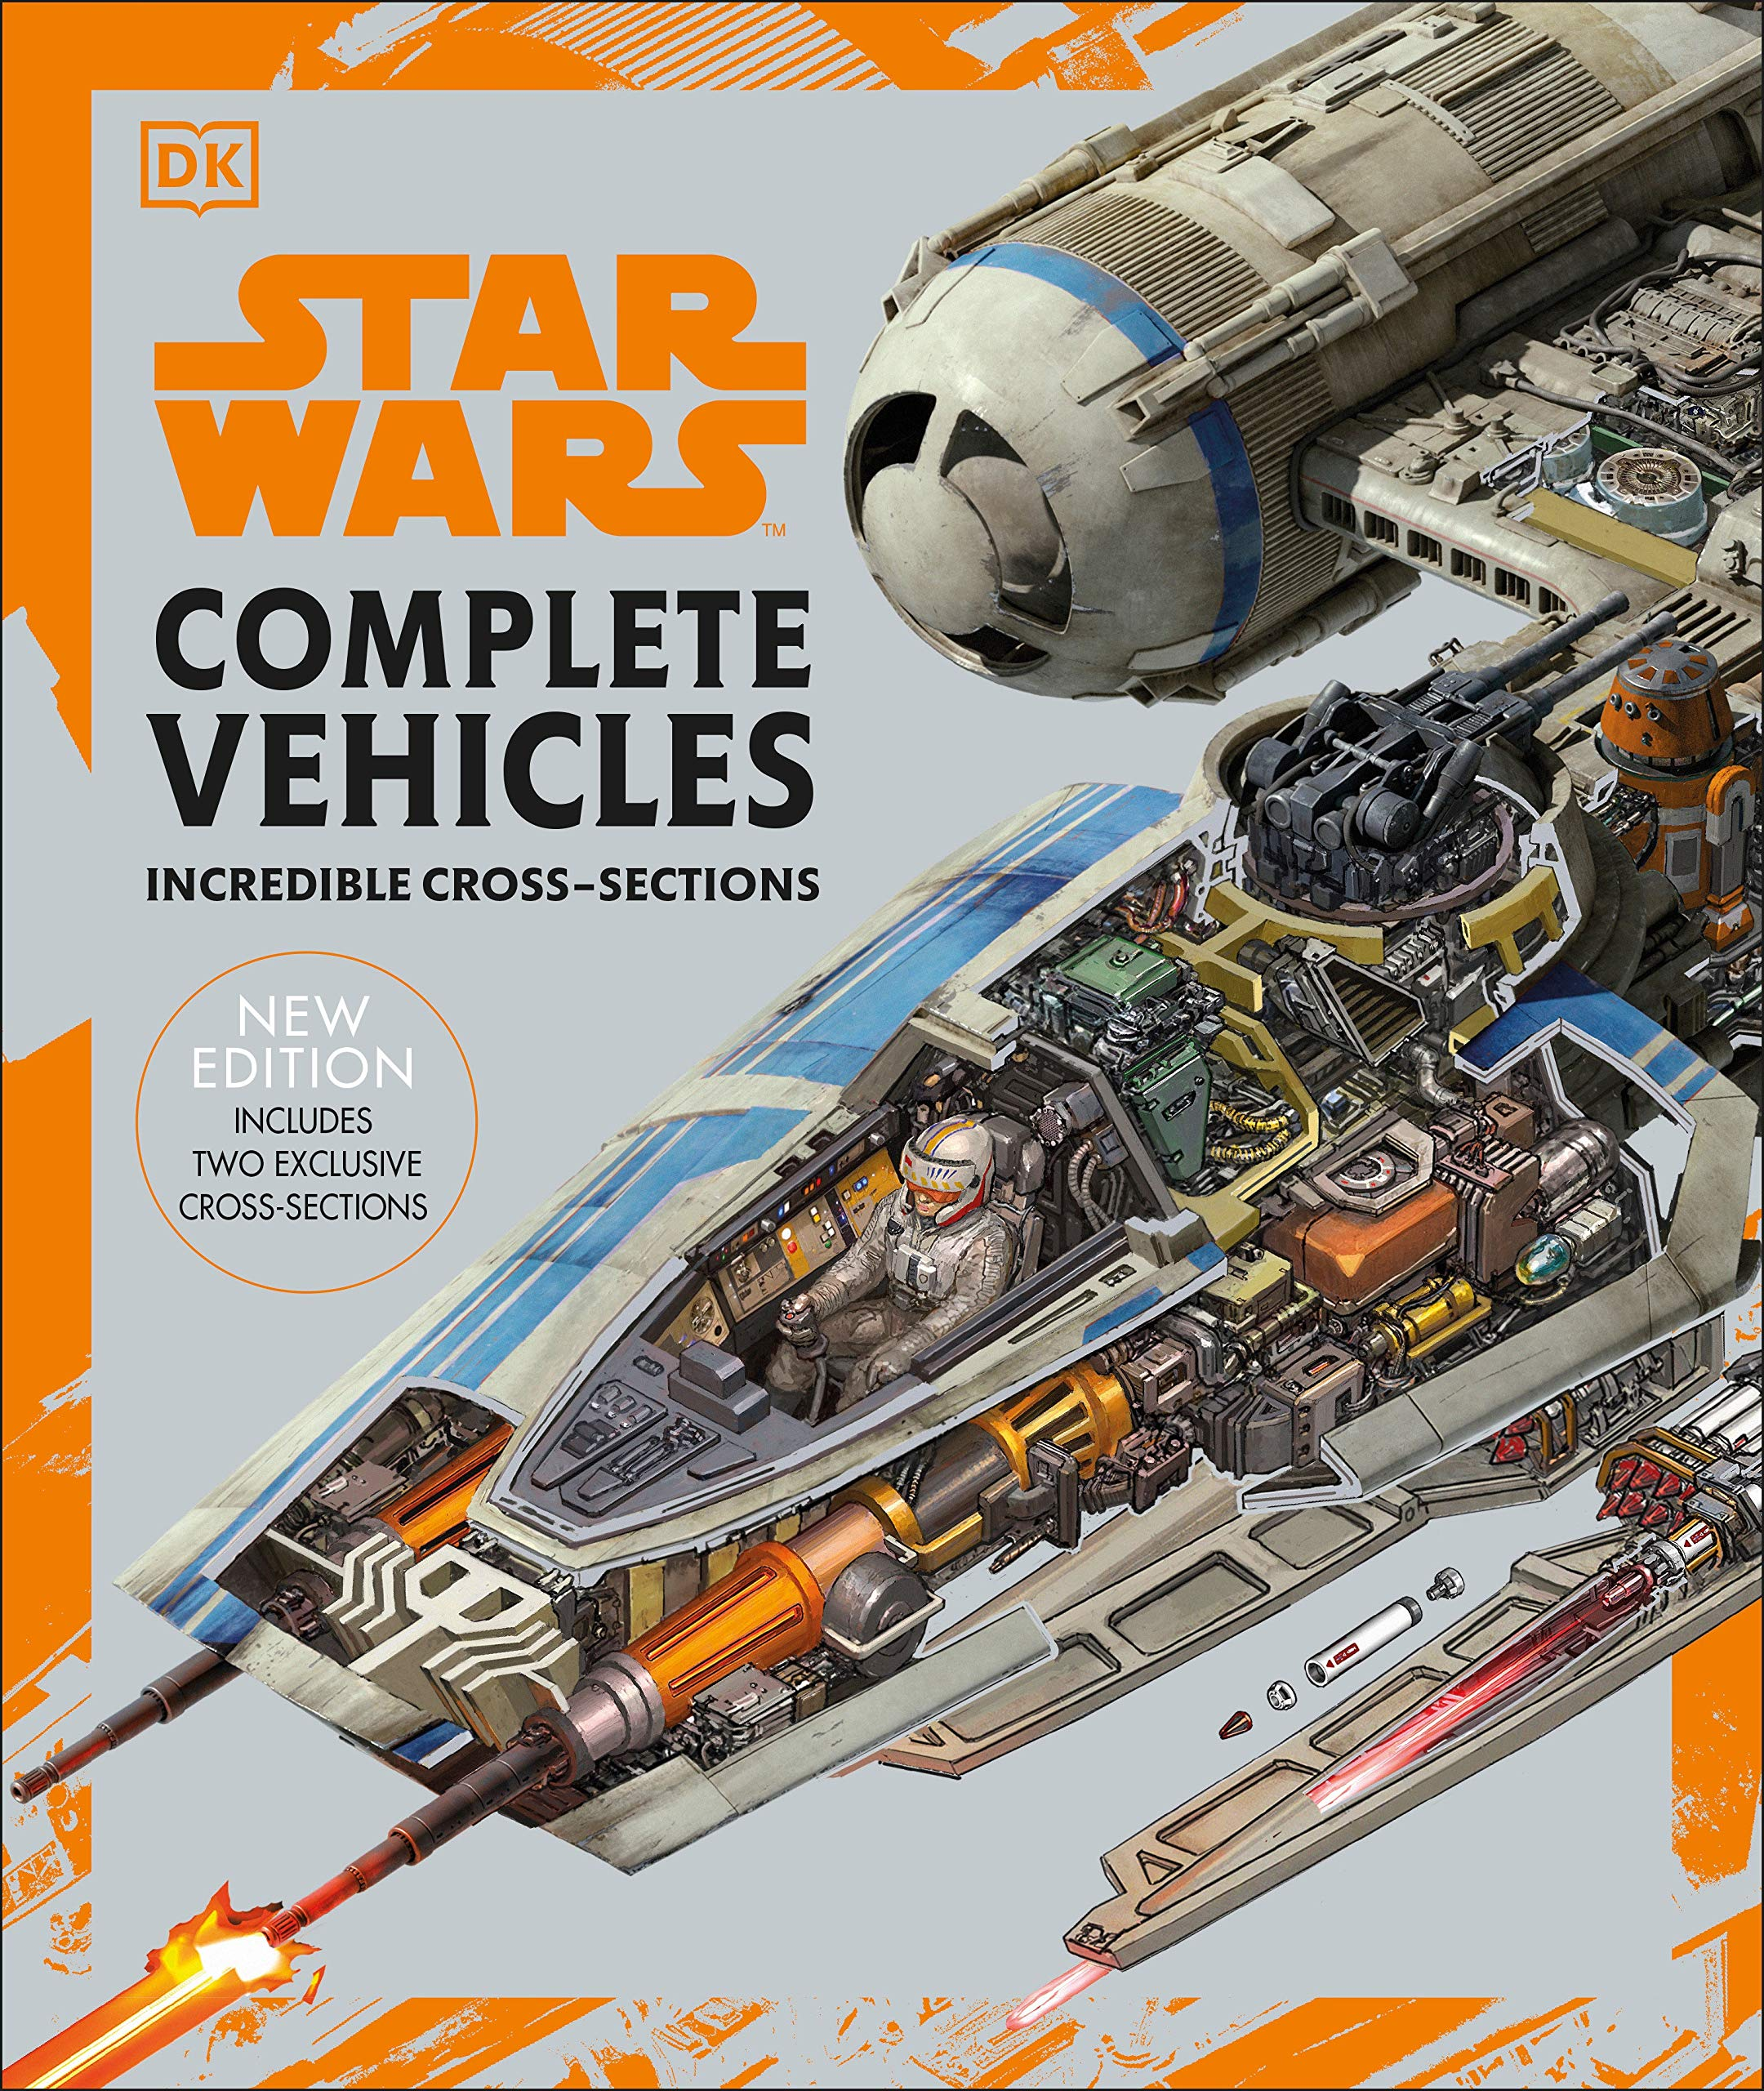 DK - Star Wars Complete Vehicles, New Edition (ENG)